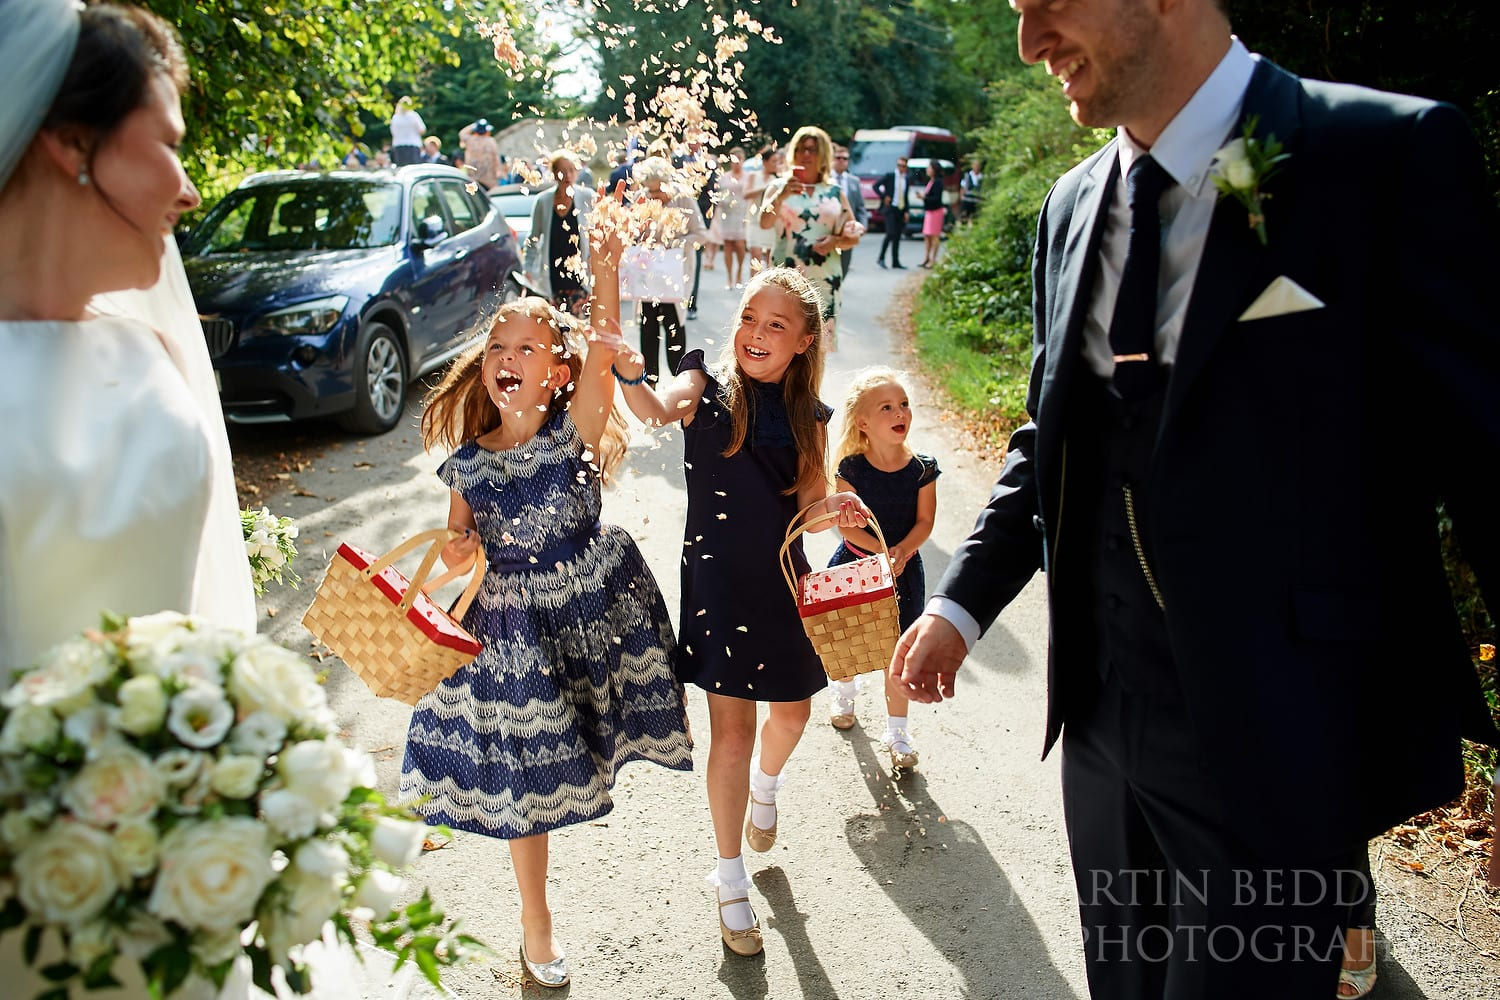 Young girls chase the bride and groom with more confetti